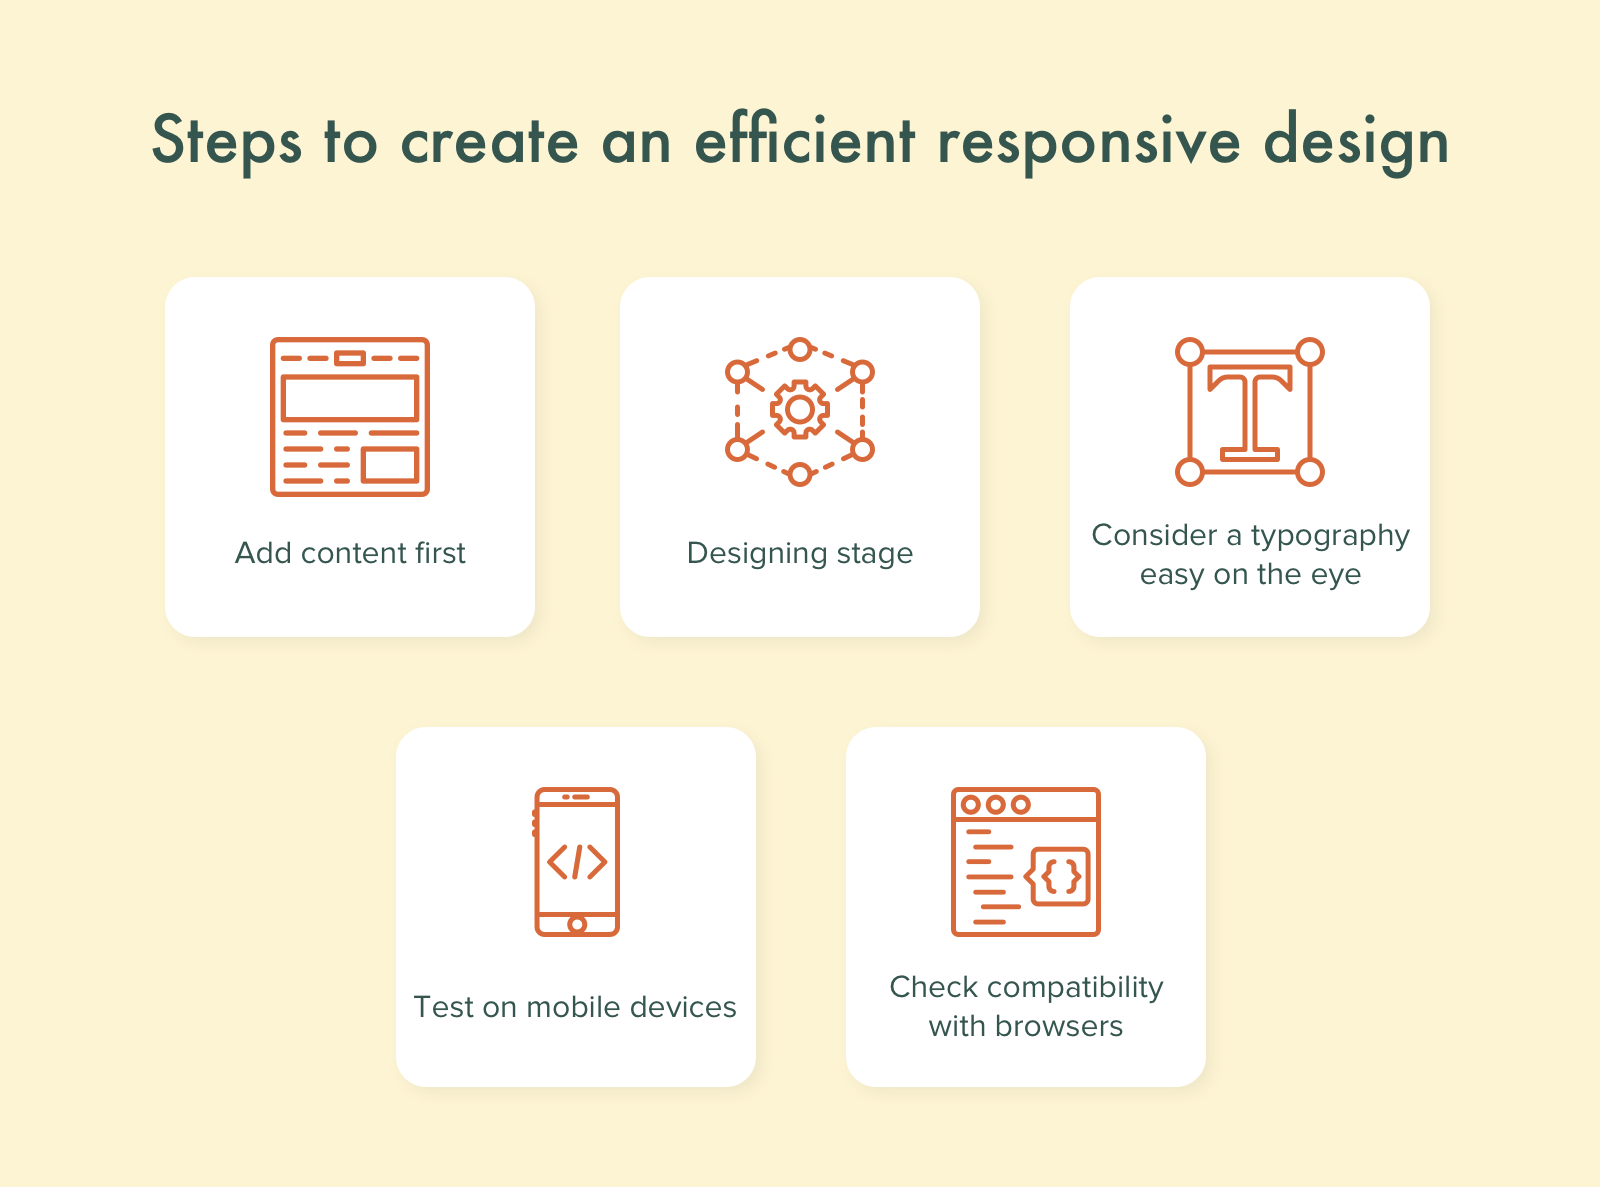 Steps to create an efficient responsive design